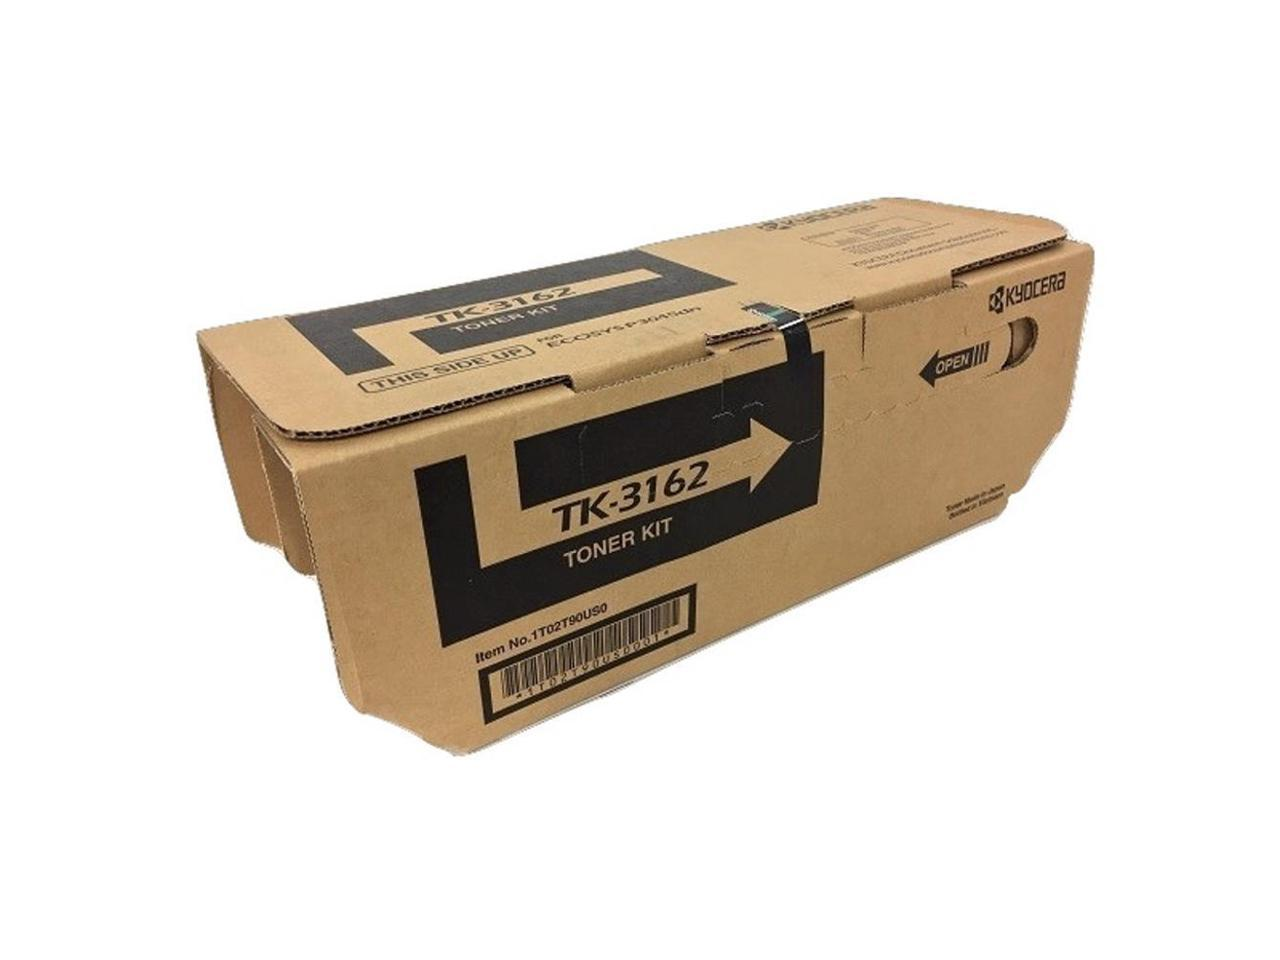 Up to 12500 Pages Yield @ 5/% Coverage Kyocera 1T02T90US0 Model TK-3162 Black Toner Kit for use with Kyocera ECOSYS P3045dn Monochrome Laser Printer Pack of 2